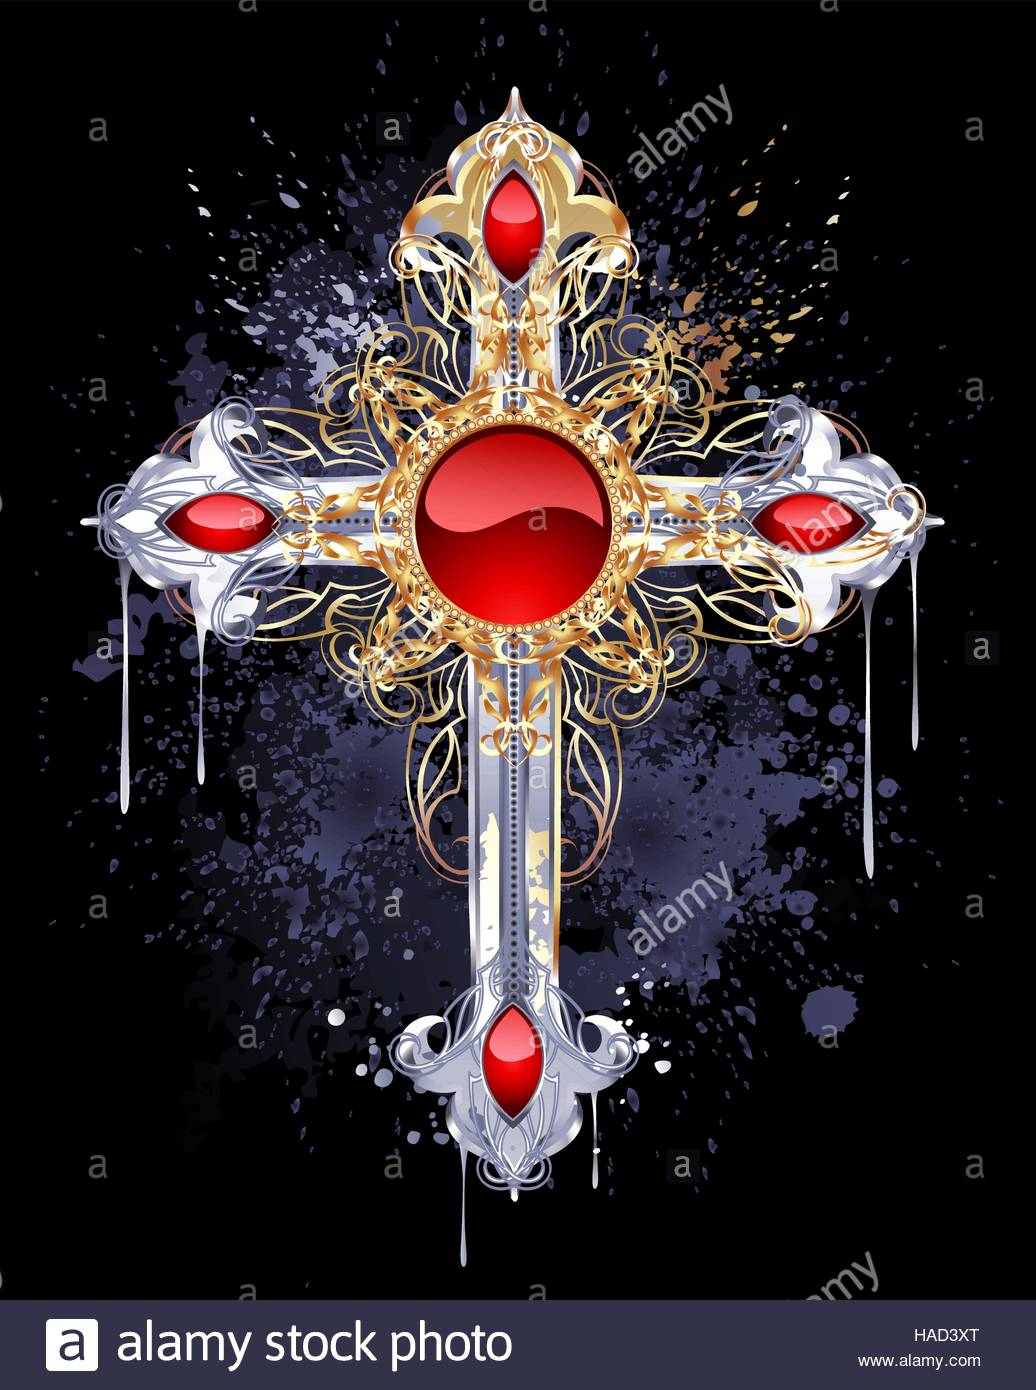 jewelry Gothic cross of silver and gold adorned with rubies and 1036x1390